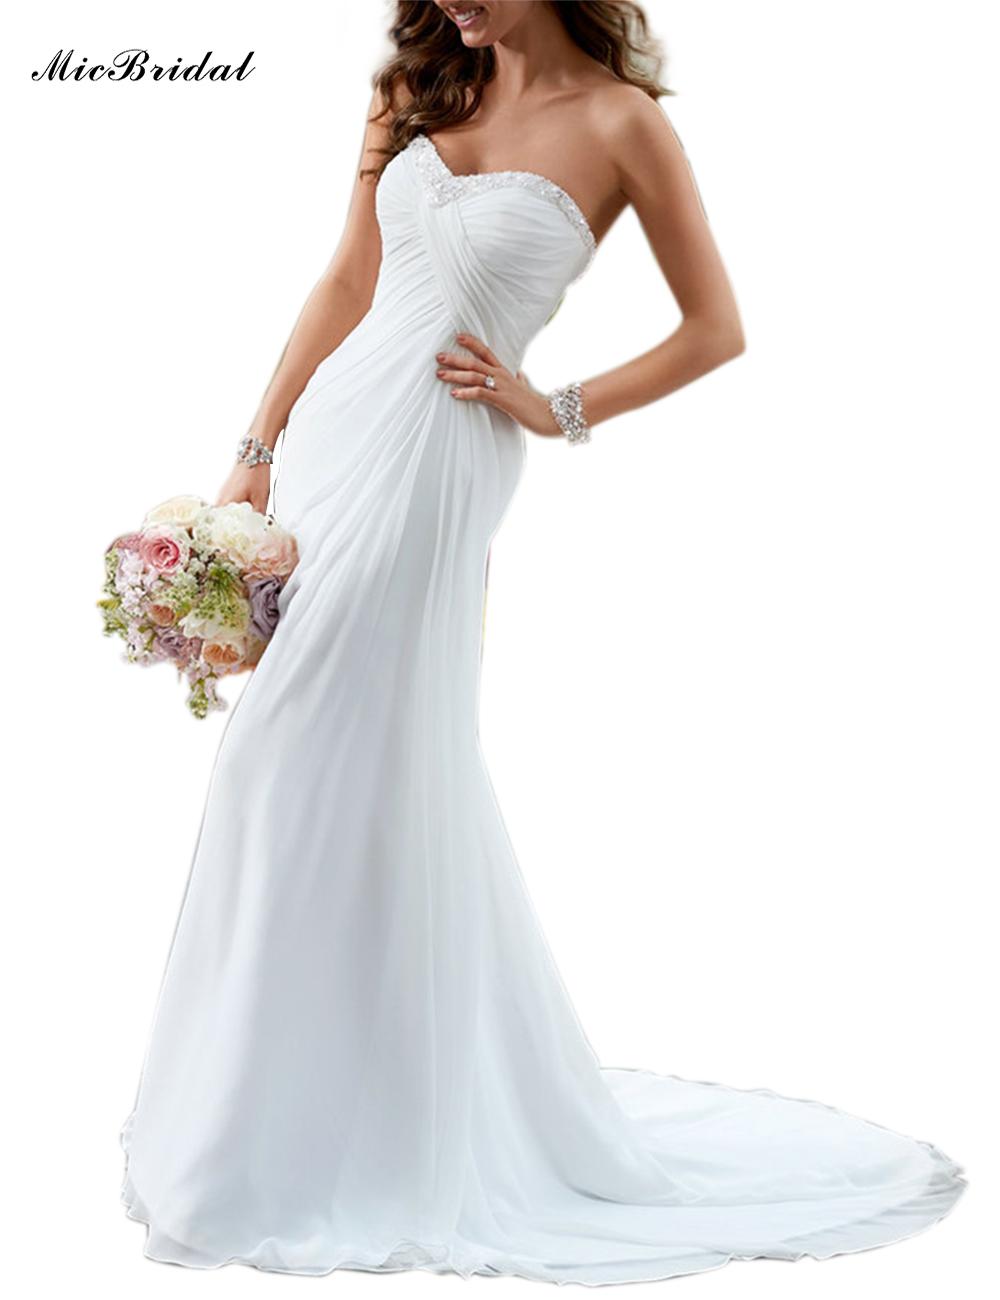 Micbridal cheap chiffon a line wedding dress made in china for Cheap chiffon wedding dresses